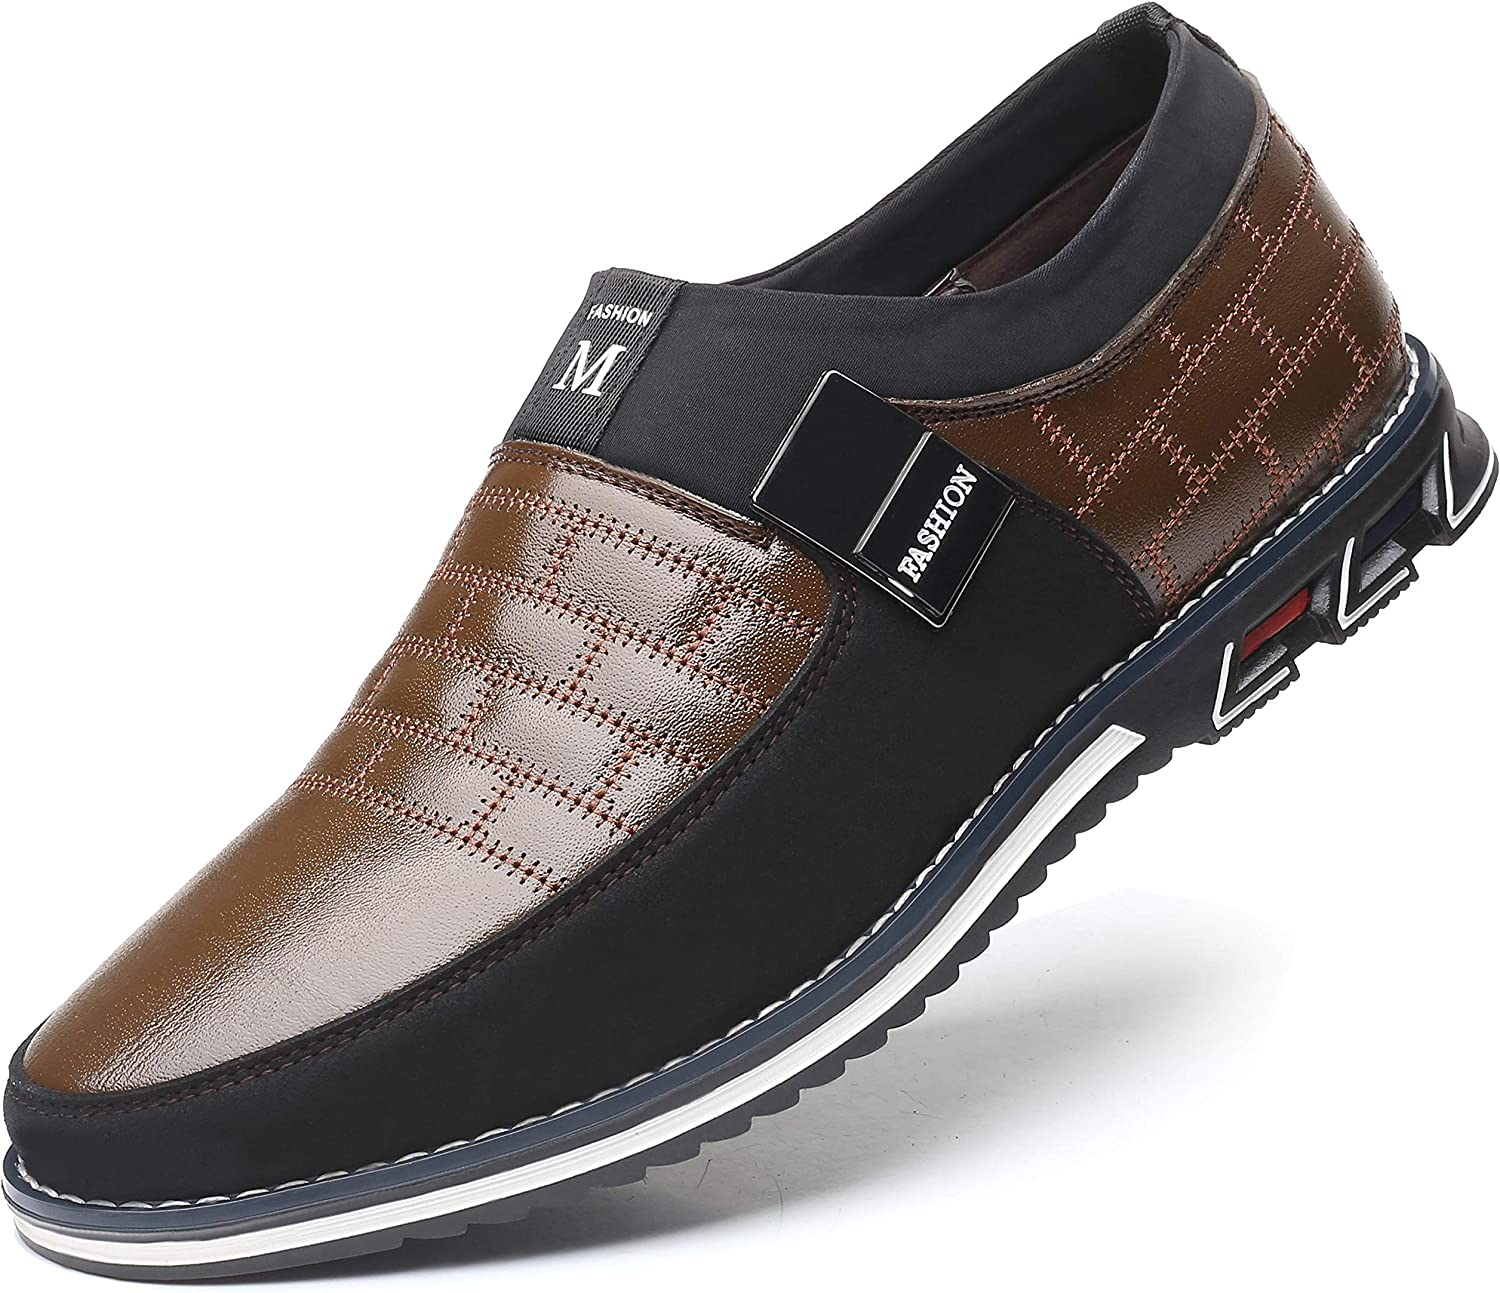 COSIDRAM Men Casual Shoes Summer Sneakers Loafers Breathable Comfort Walking Shoes Fashion Driving Shoes Luxury Black Brown Leather Shoes for Male Business Work Office Dress Outdoor